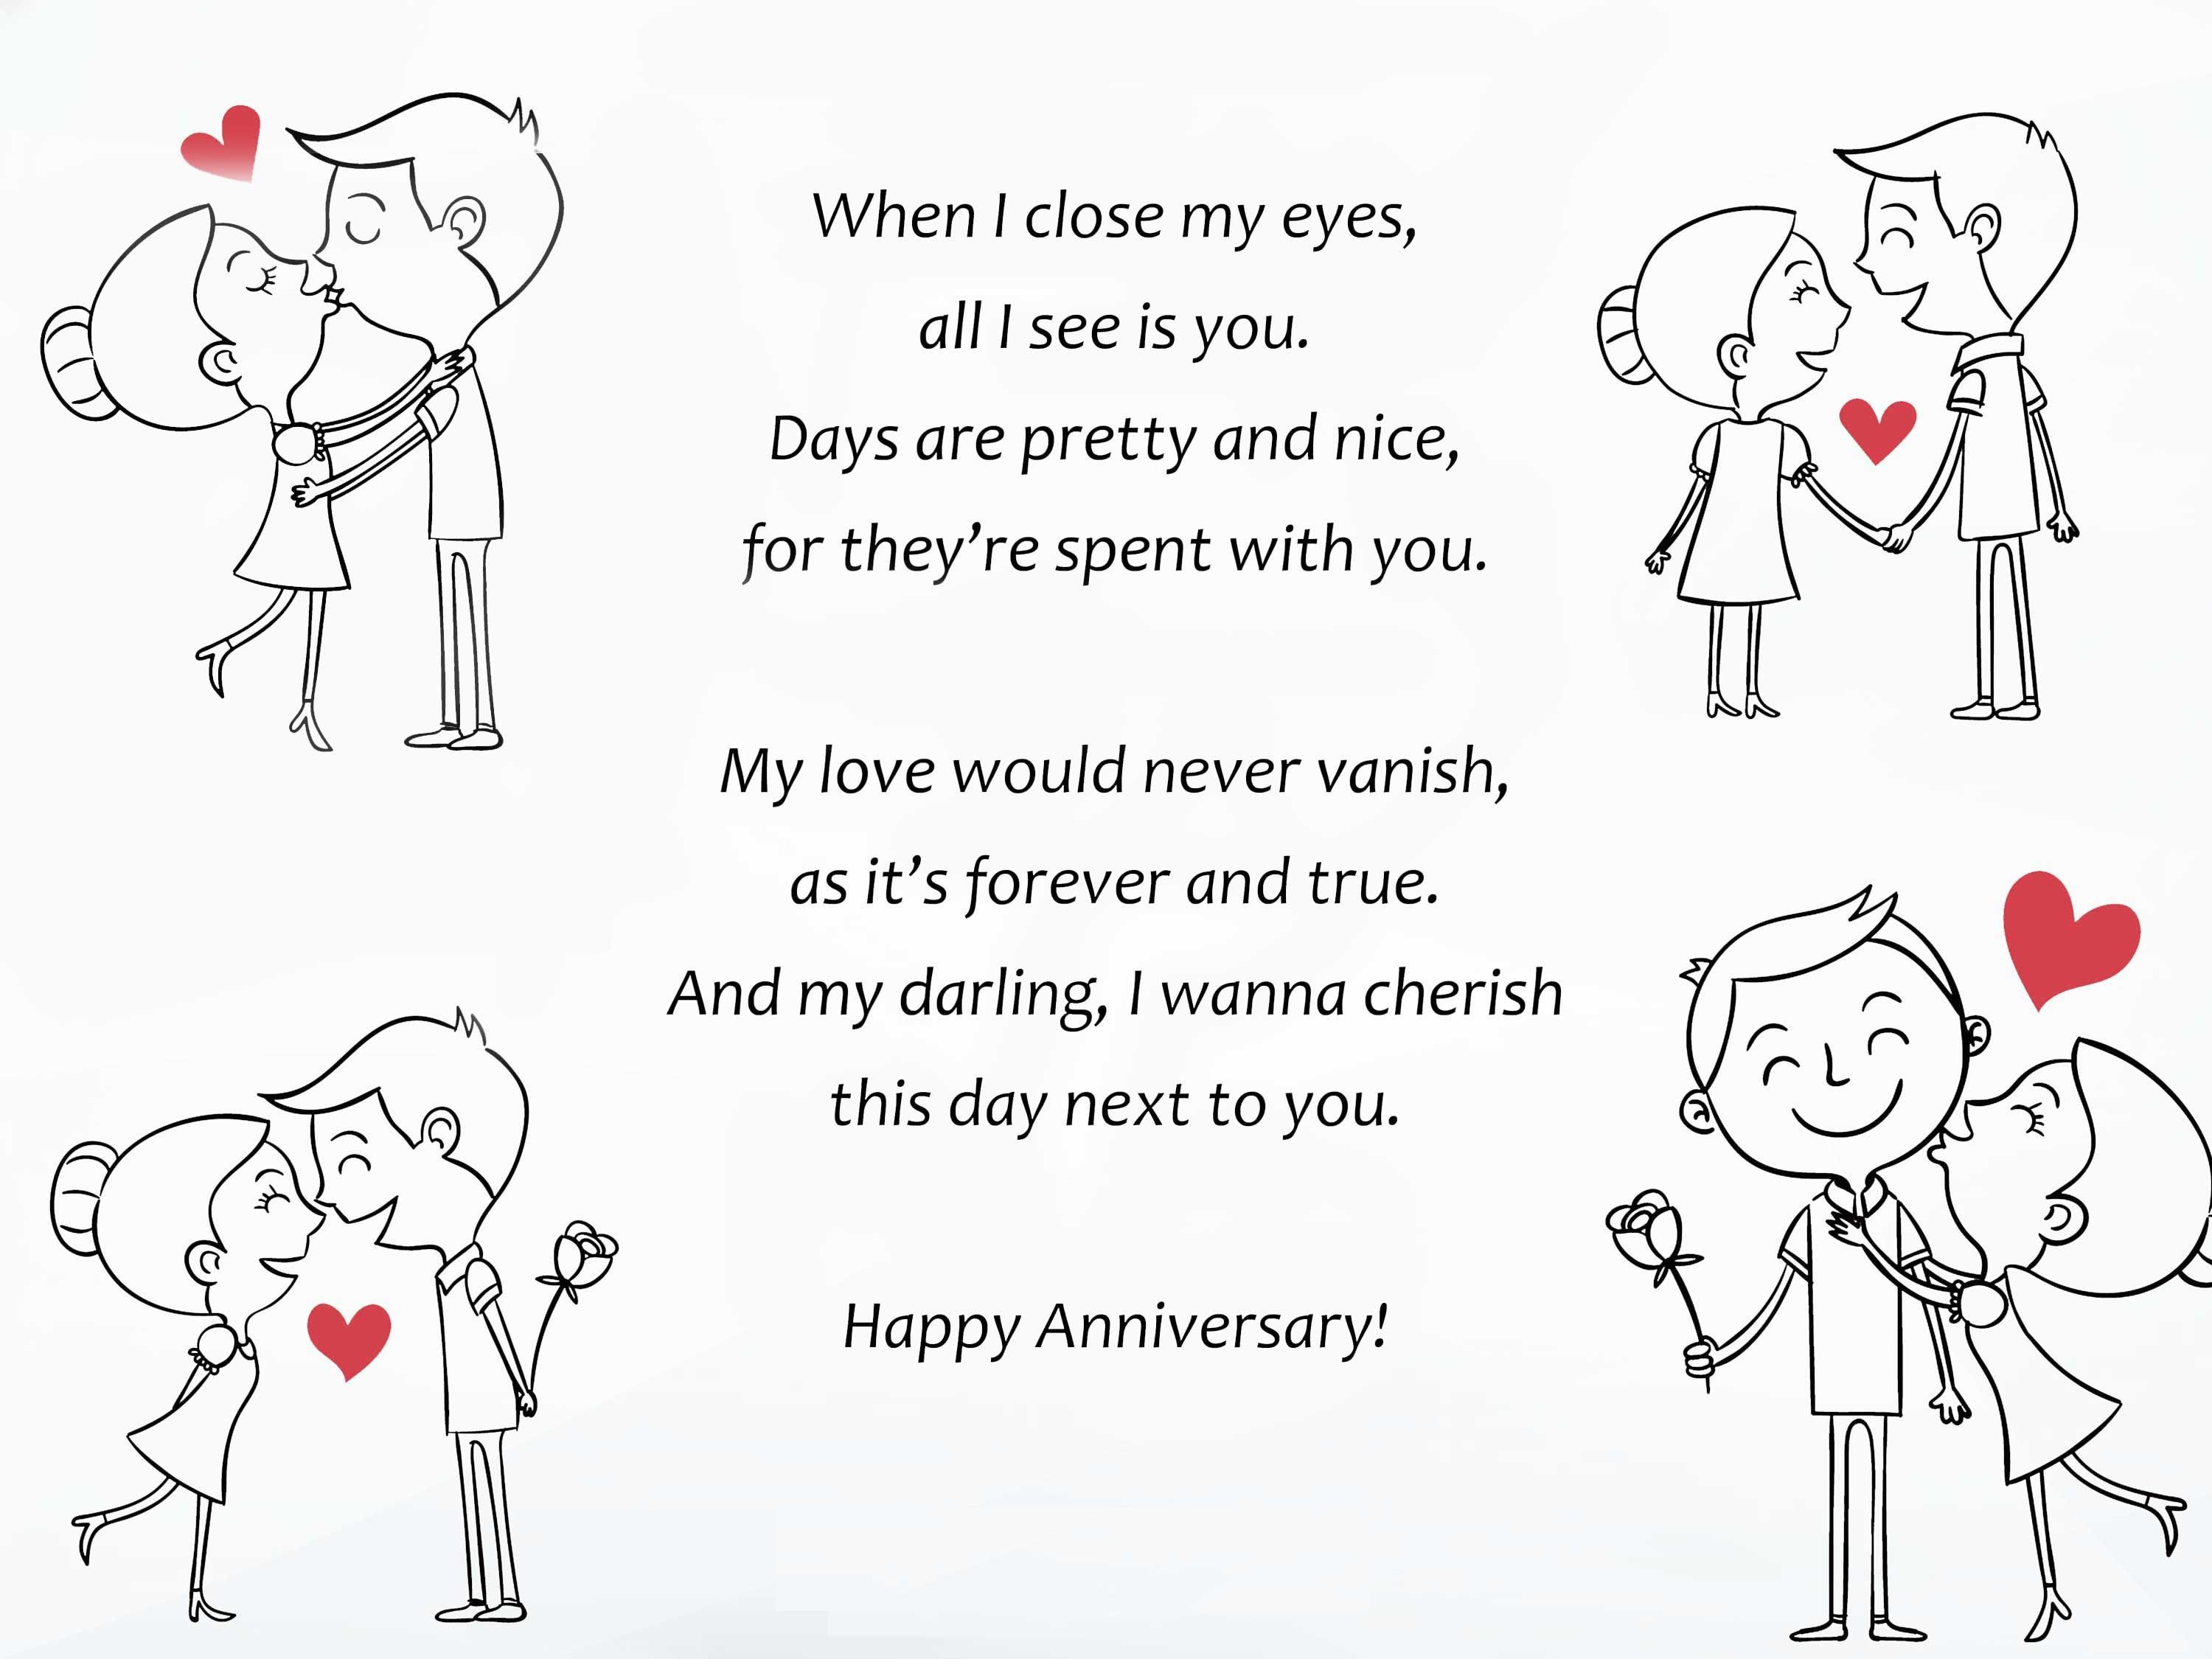 pin by vikas pandey on happy anniversary wishes pinterest happy